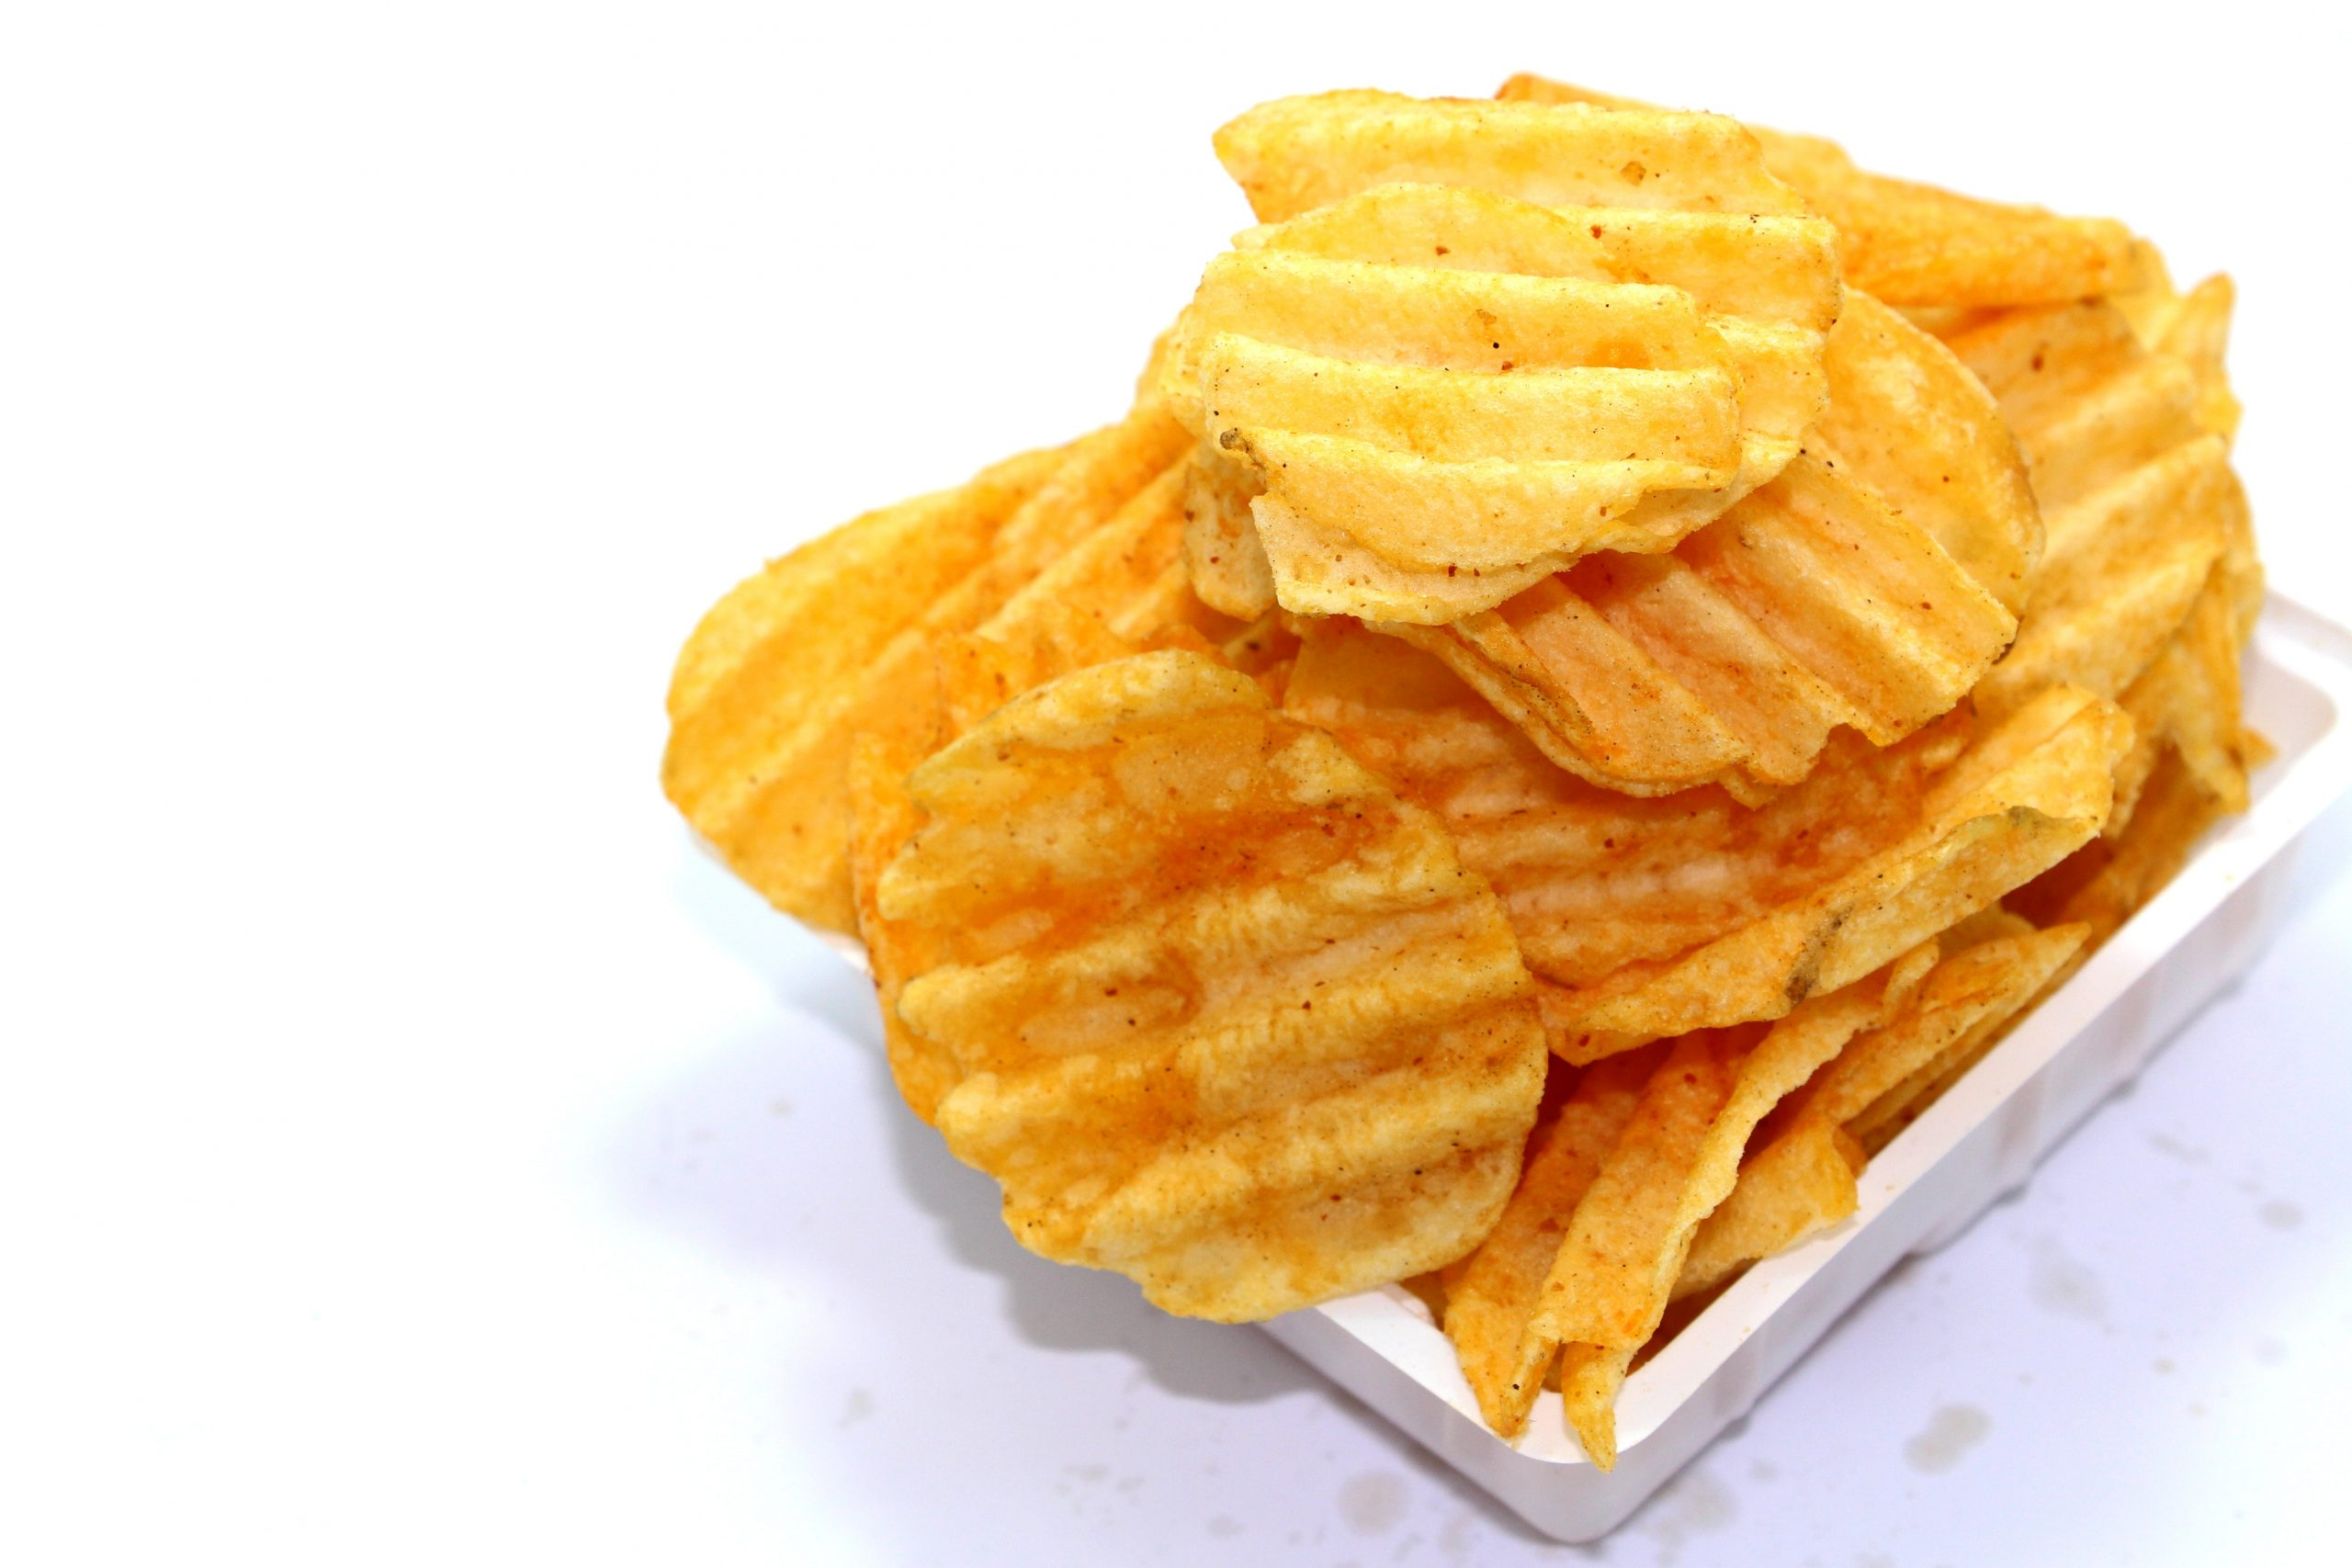 Potato chips as an example of bad gut habits.